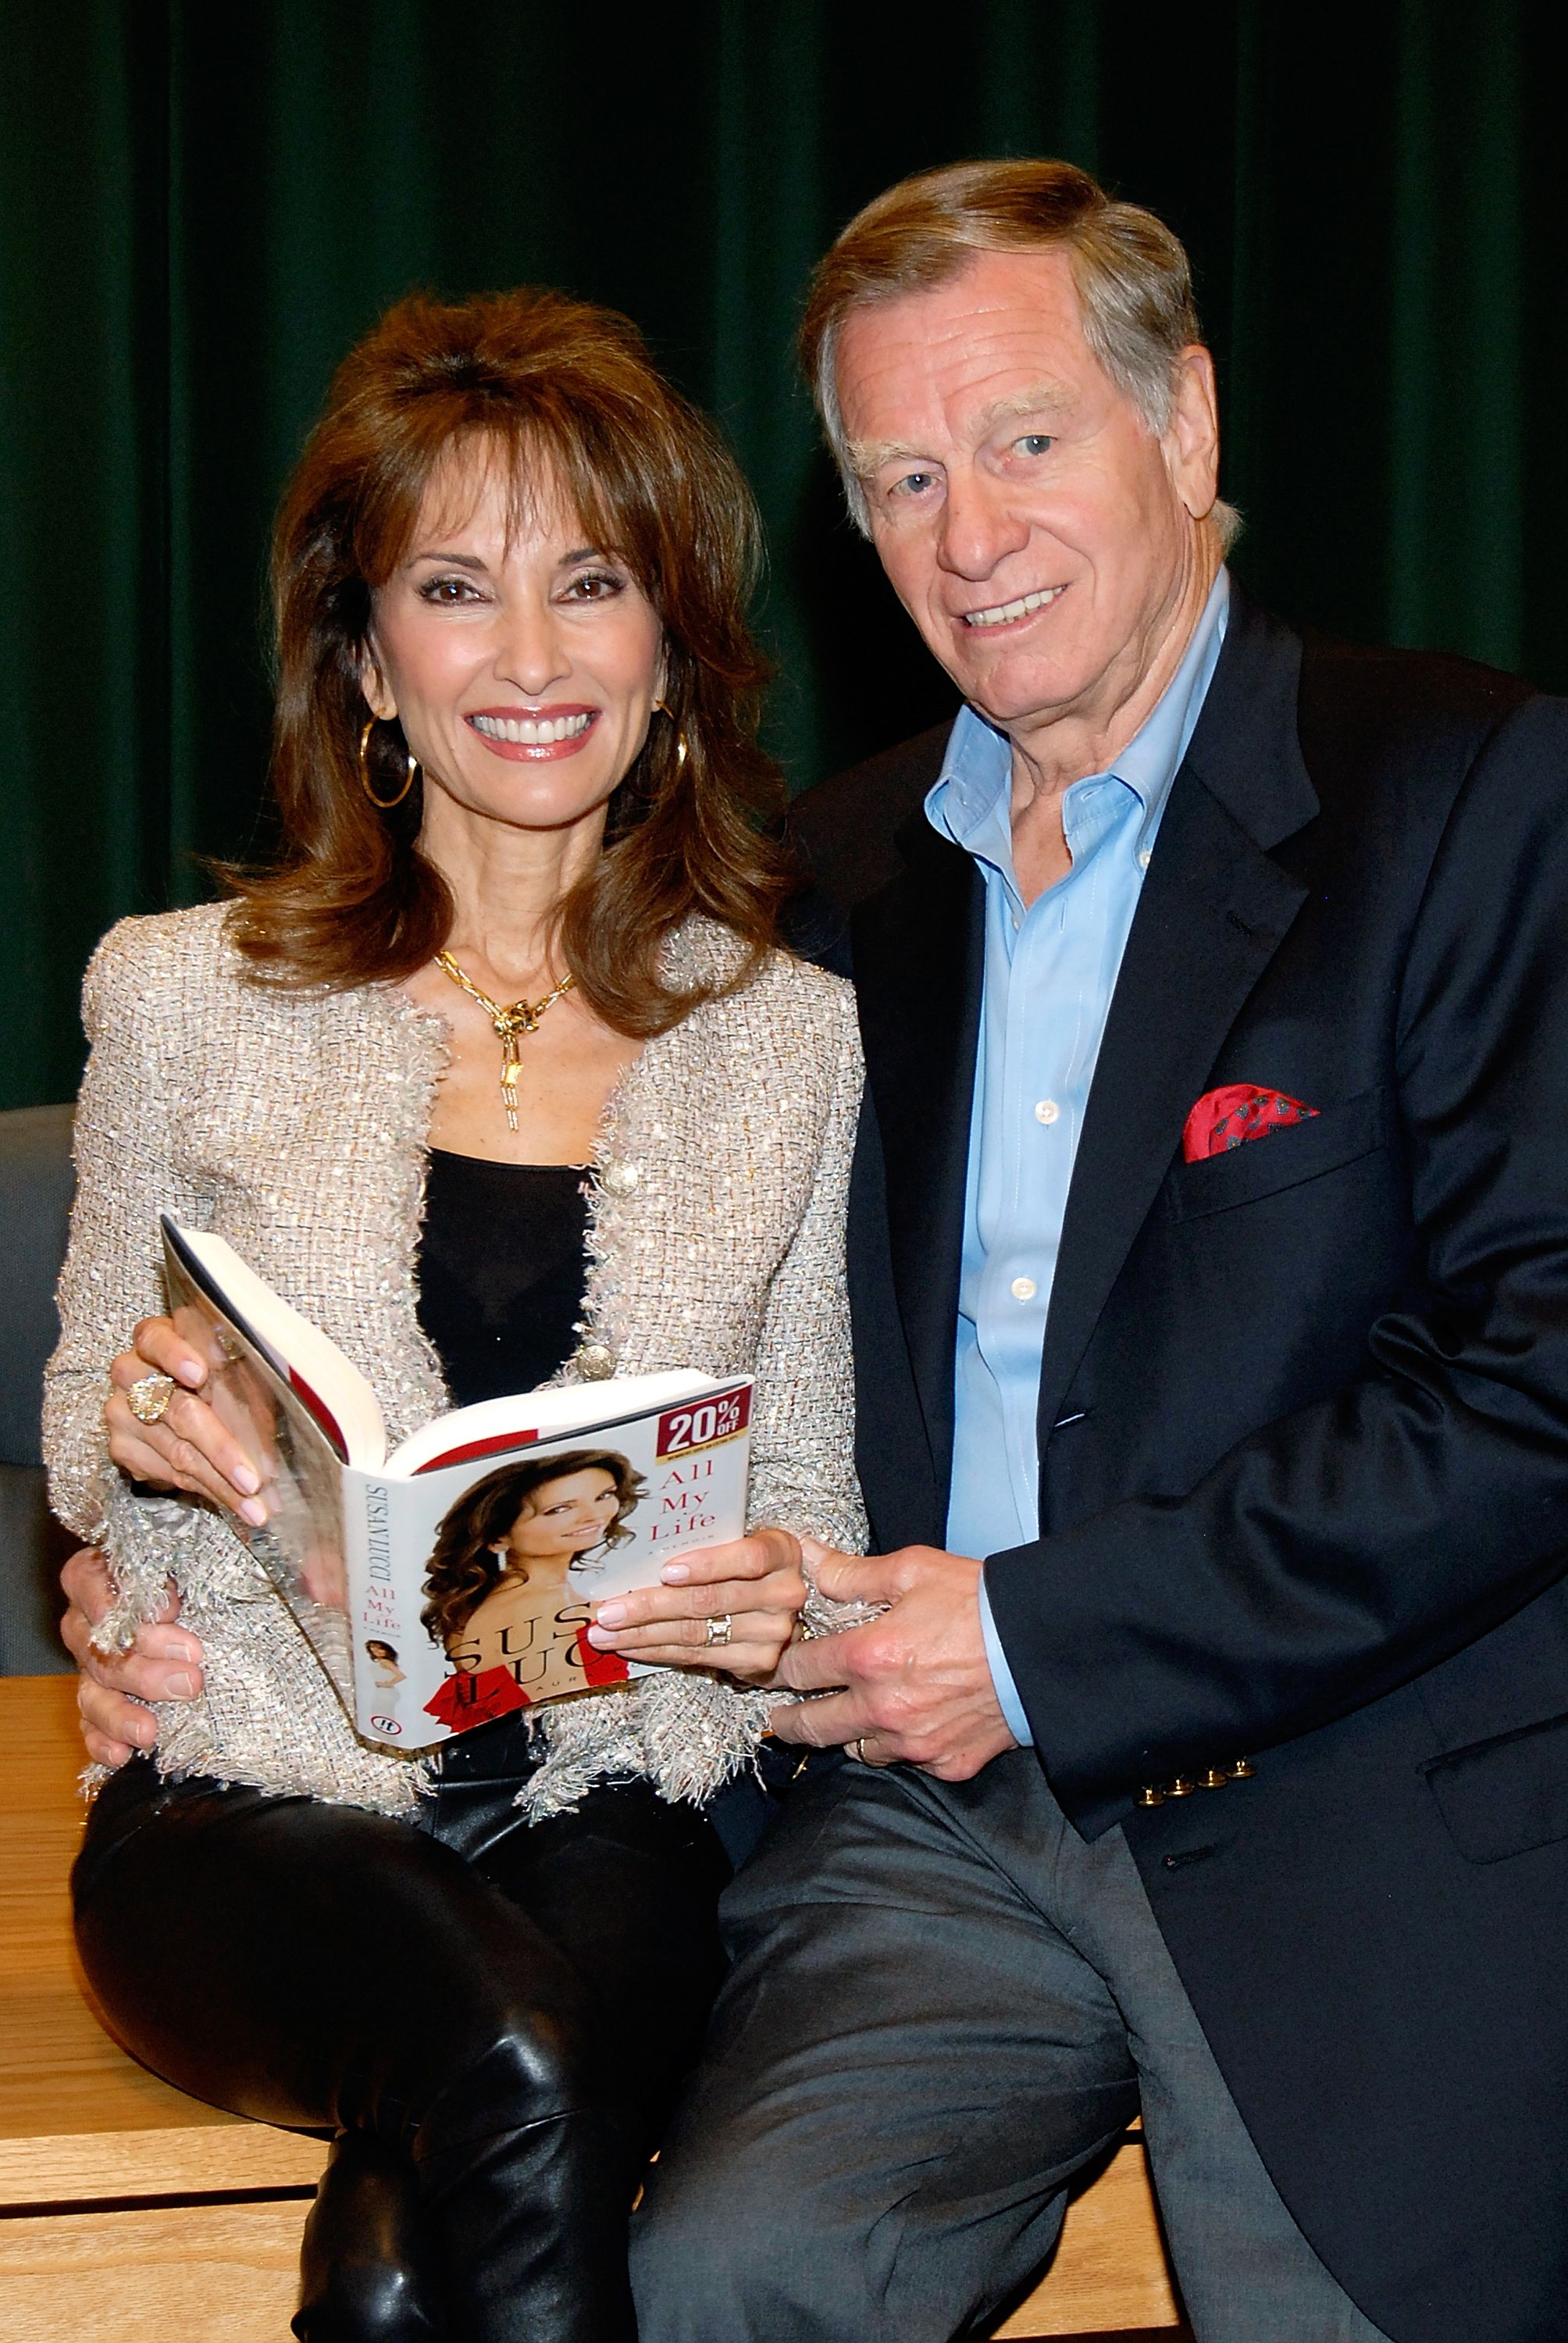 """Susan Lucci and her husband Helmut Huber at the signing of her new book """"All My Life"""" at Barnes & Noble Booksellers on April 12, 2011 